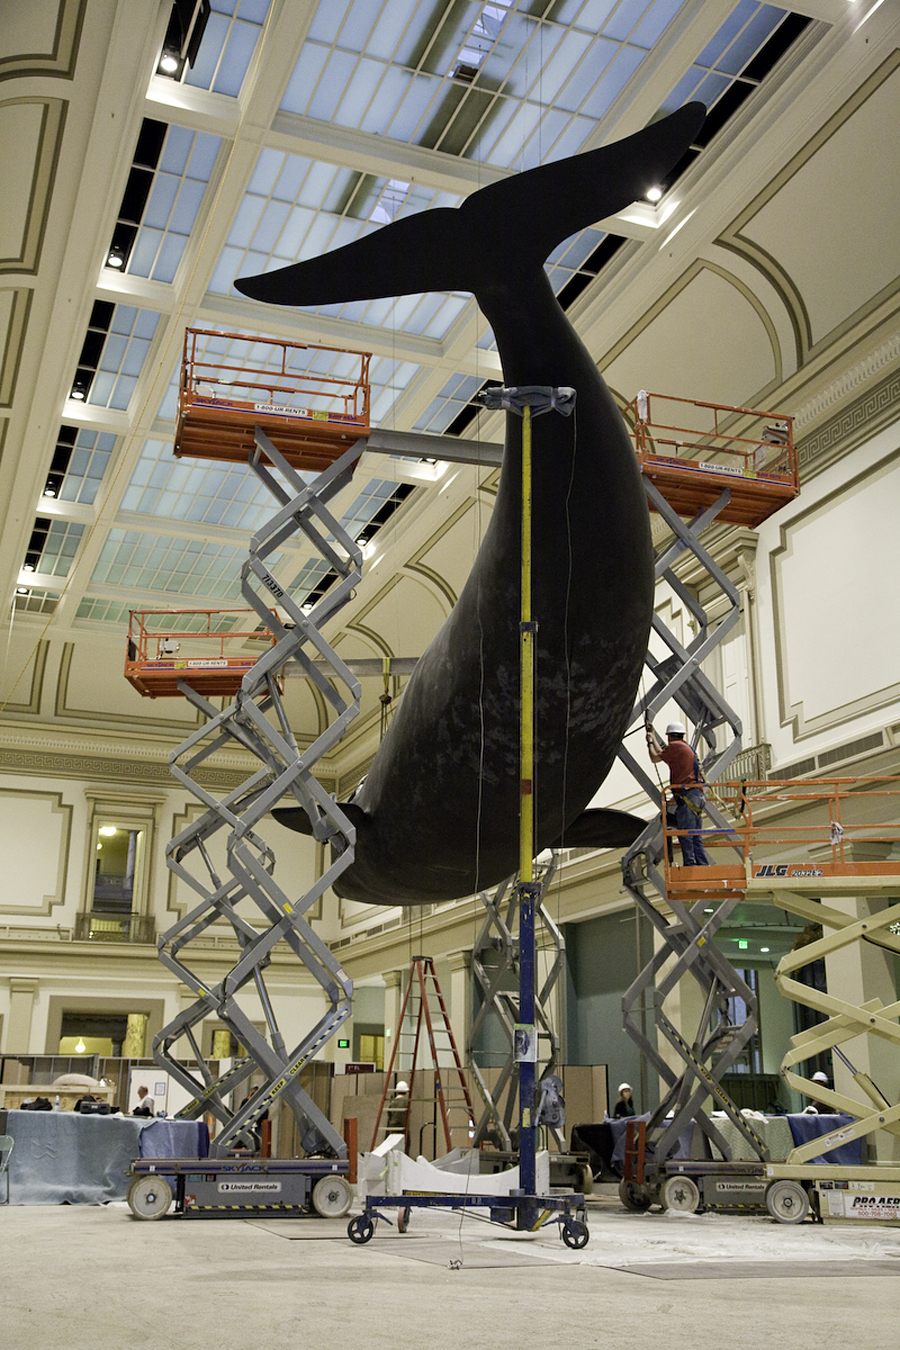 A crew works on creating a life-size, meticulously detailed model of the North Atlantic right whale Phoenix<div class='credit'><strong>Credit:</strong> A crew works on creating a life-size, meticulously detailed model of the North Atlantic right whale Phoenix</div>